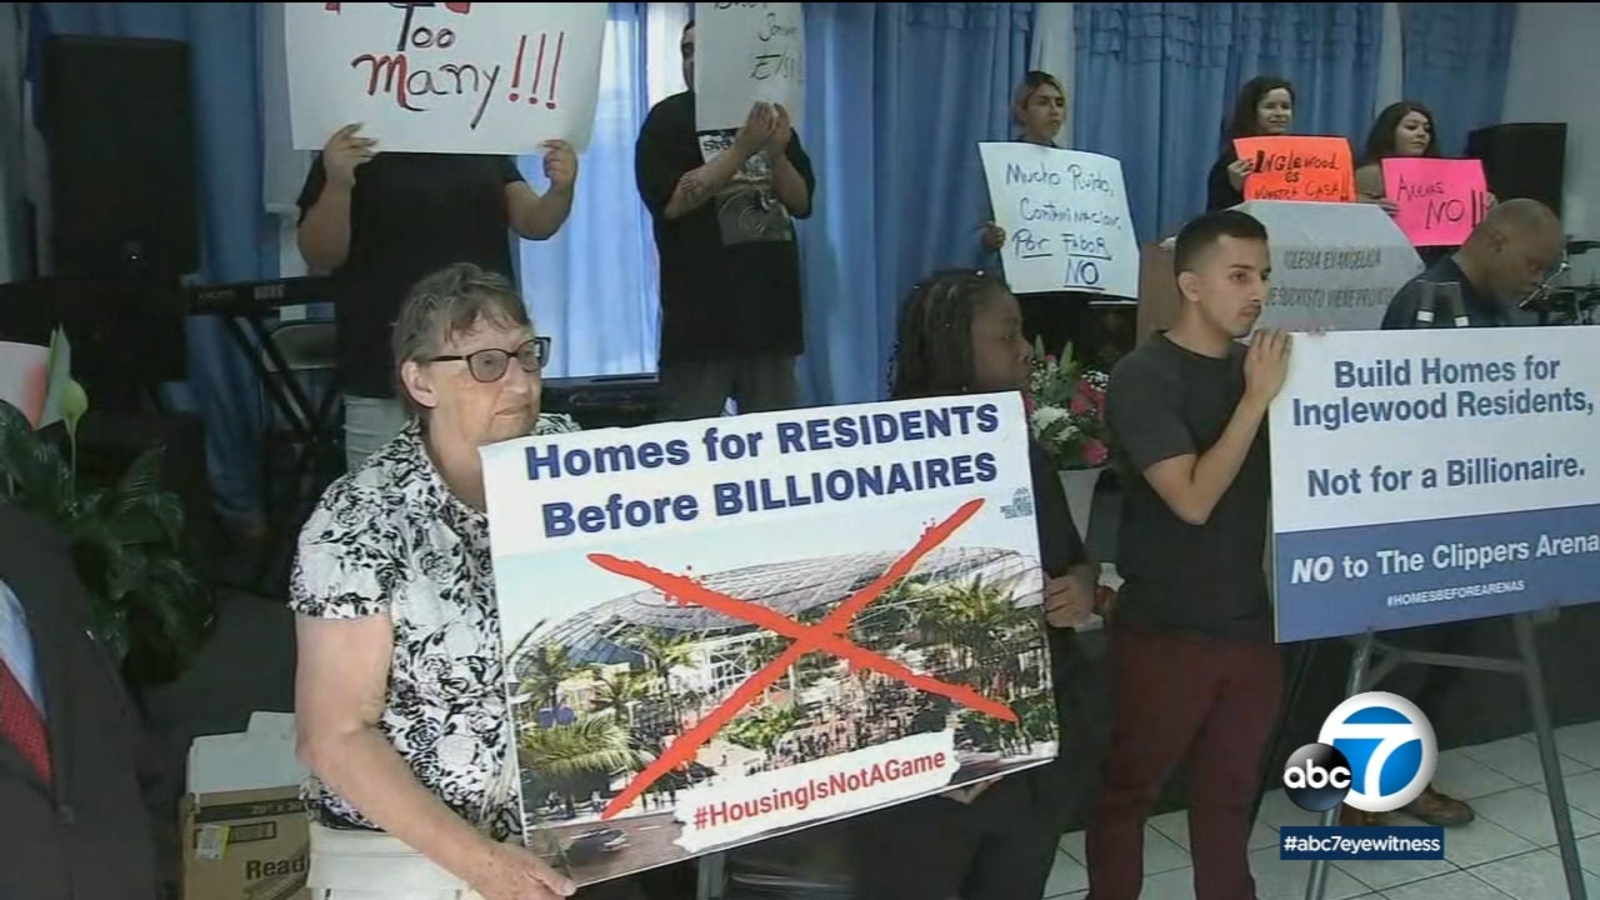 Clippers arena: Protesters ramp up battle against Inglewood site - KABC-TV